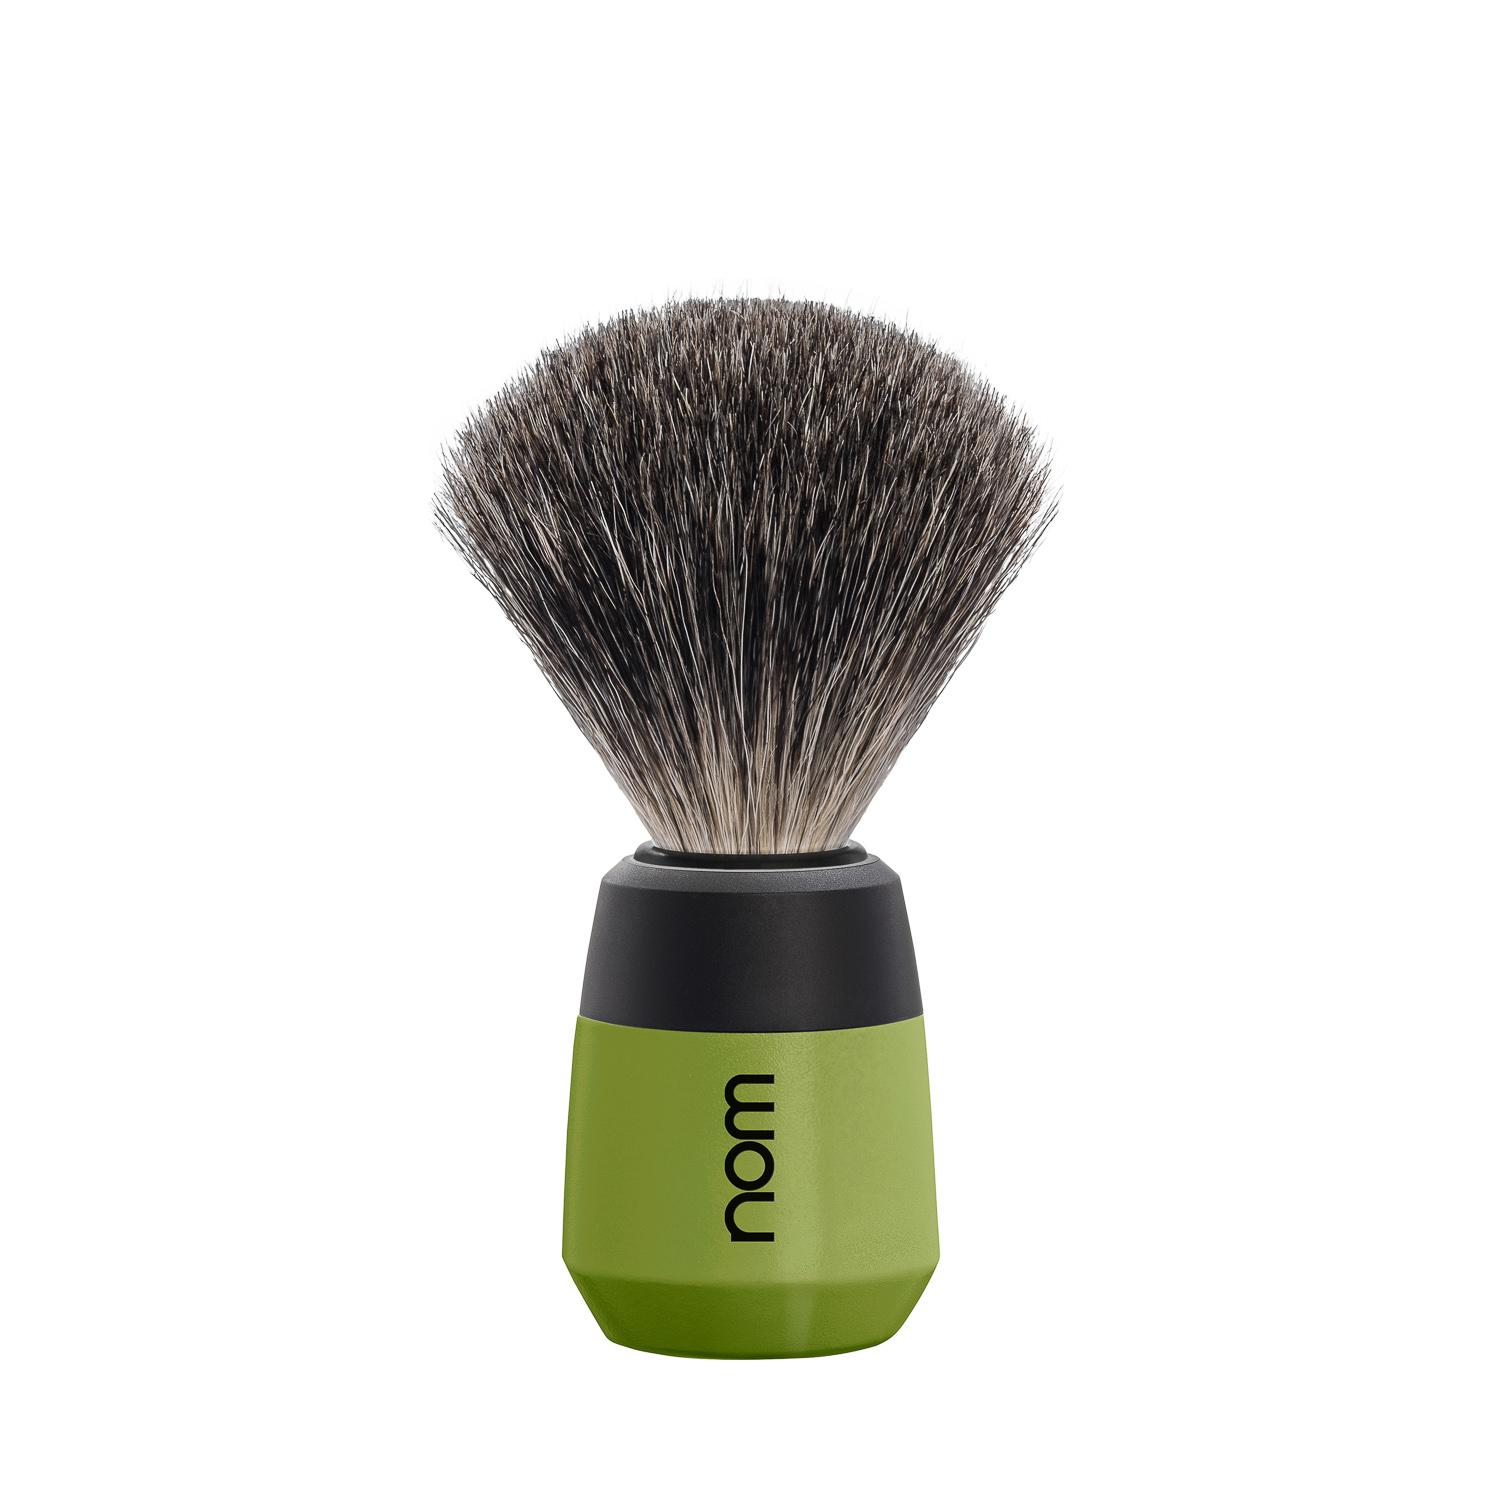 nom MAX, Olive, Badger Shaving Brush